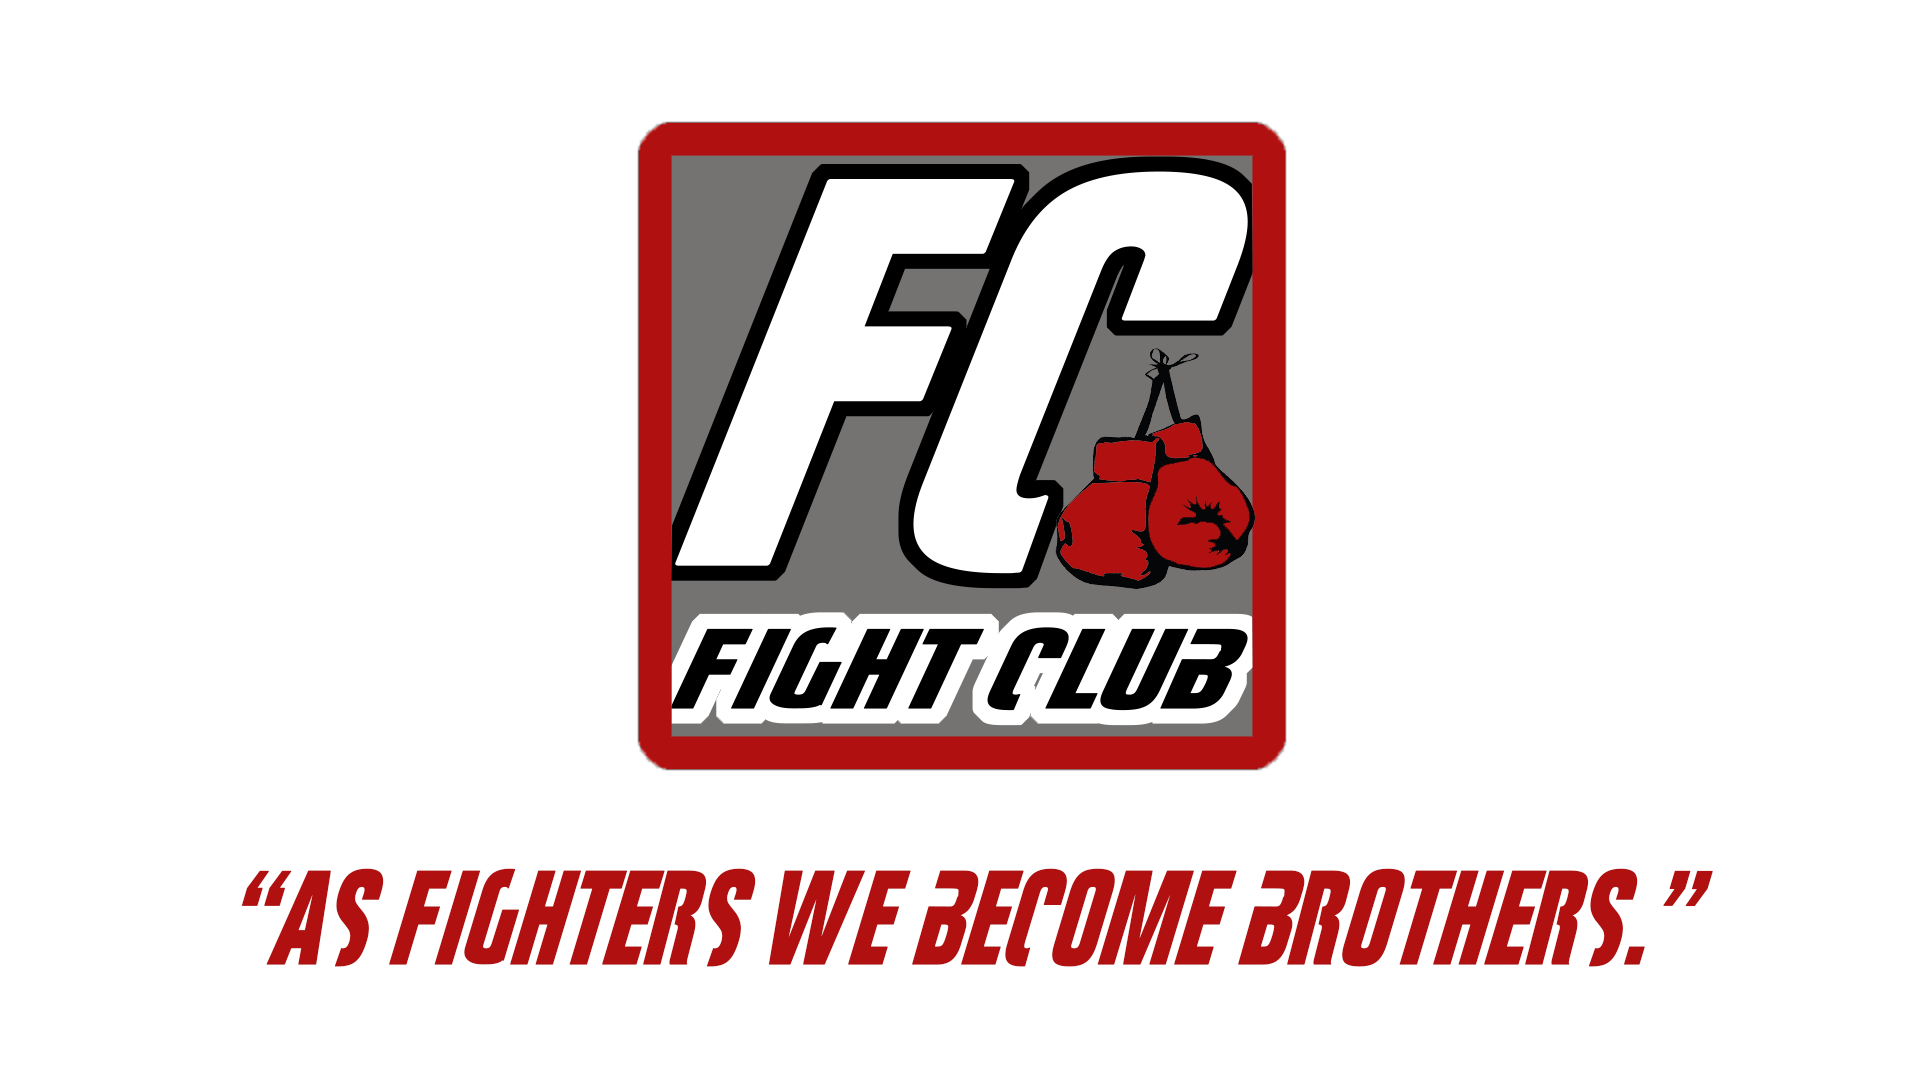 FC_LOGO_FINISHED_PRODUCT.png.3ac16c455ff5f60ce7e0c3433721a3bb.png